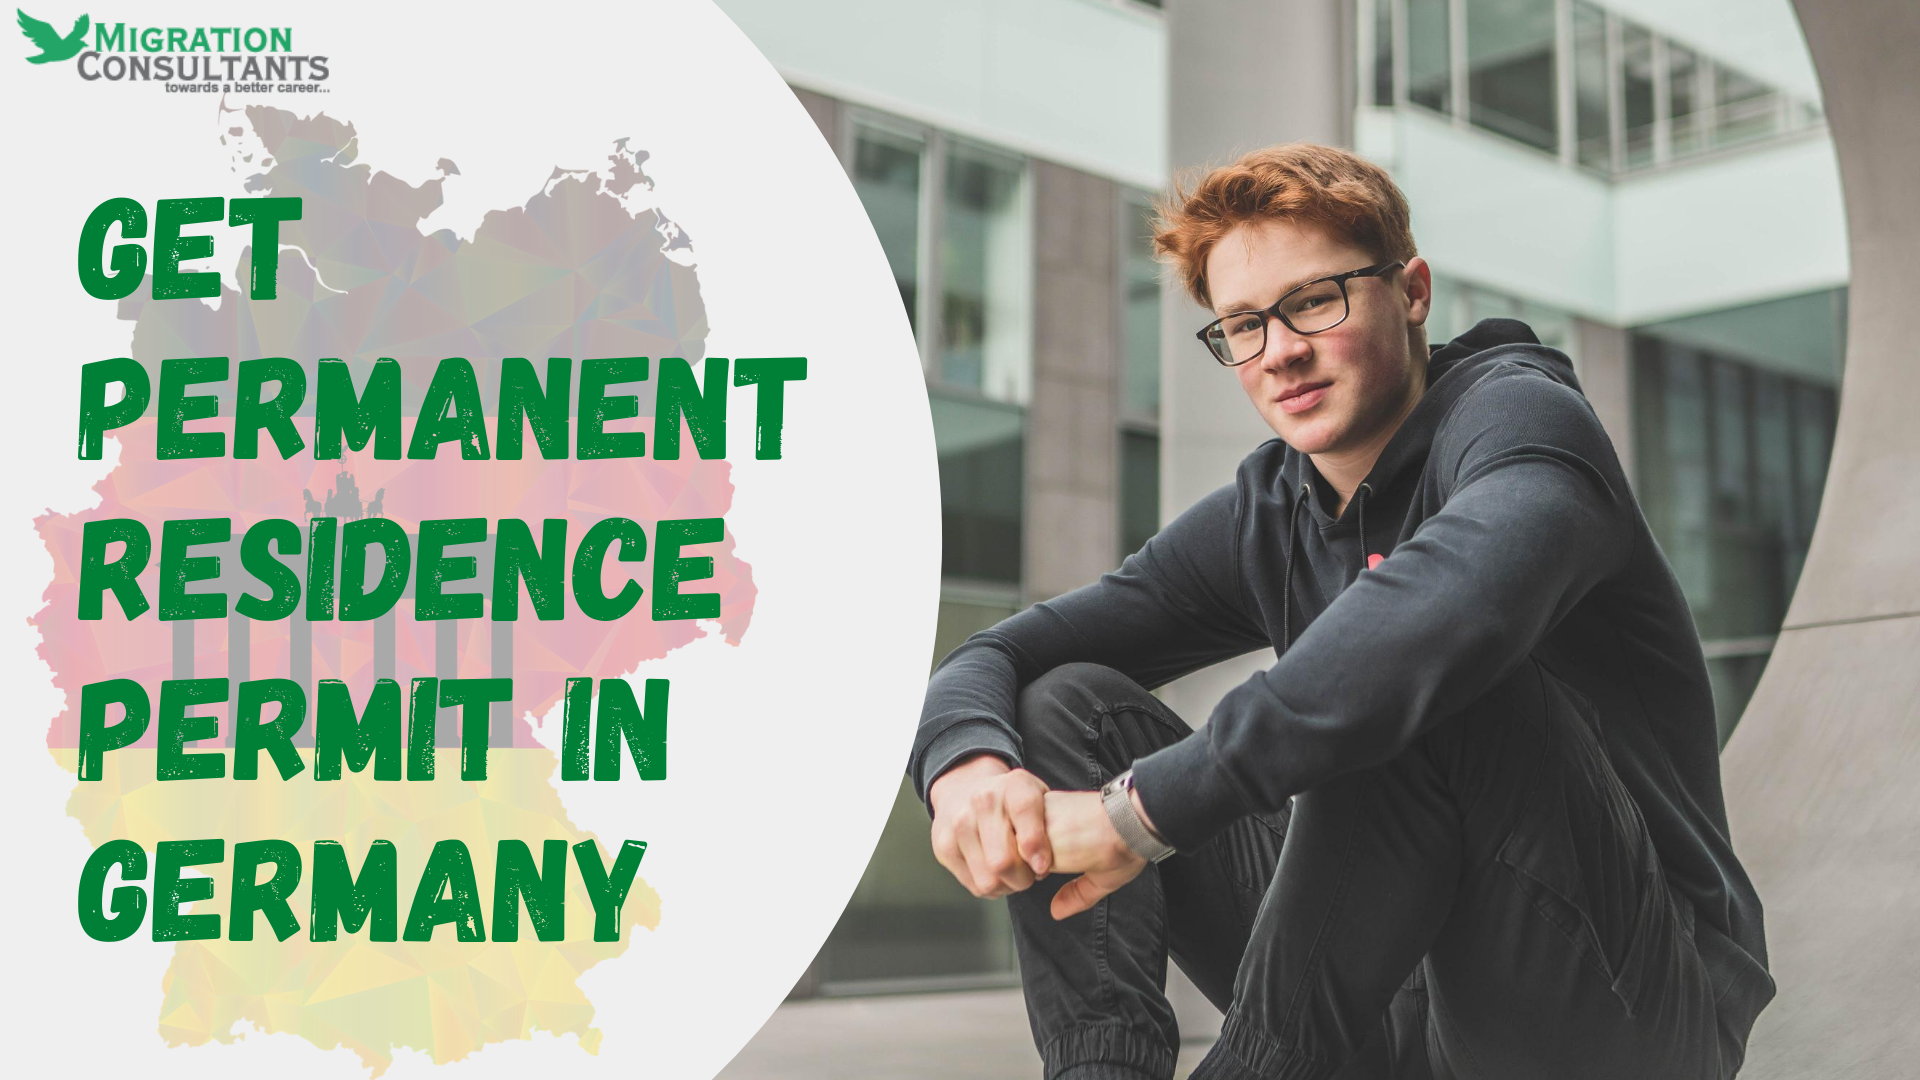 How to get Permanent Residence Permit in Germany?